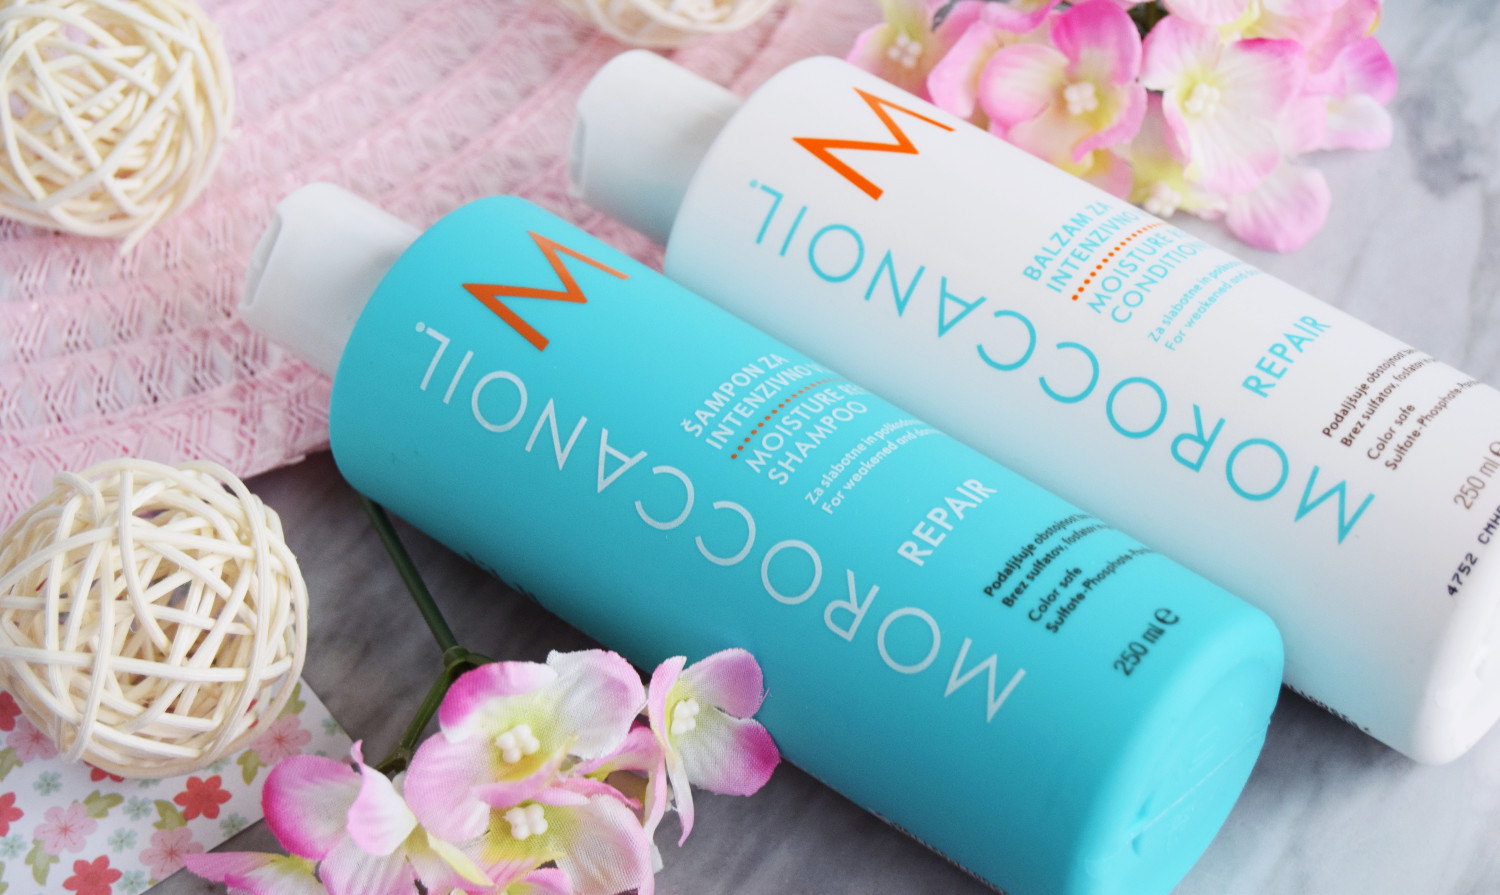 Moroccanoil_hair_Conditioner_Shampoo_Zalabell_beauty_4